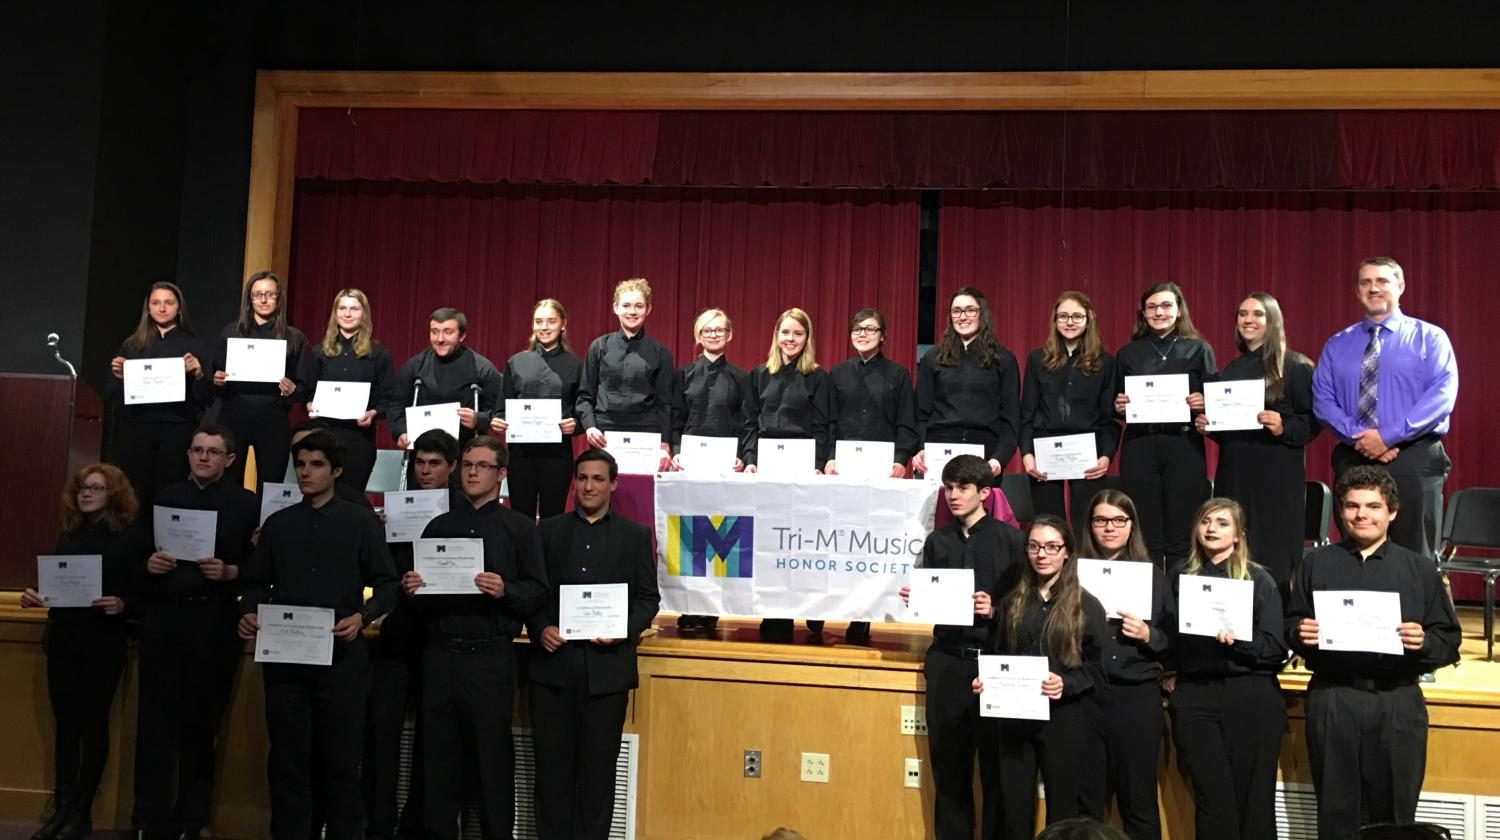 Introducing the Tri-M National Music Honor Society